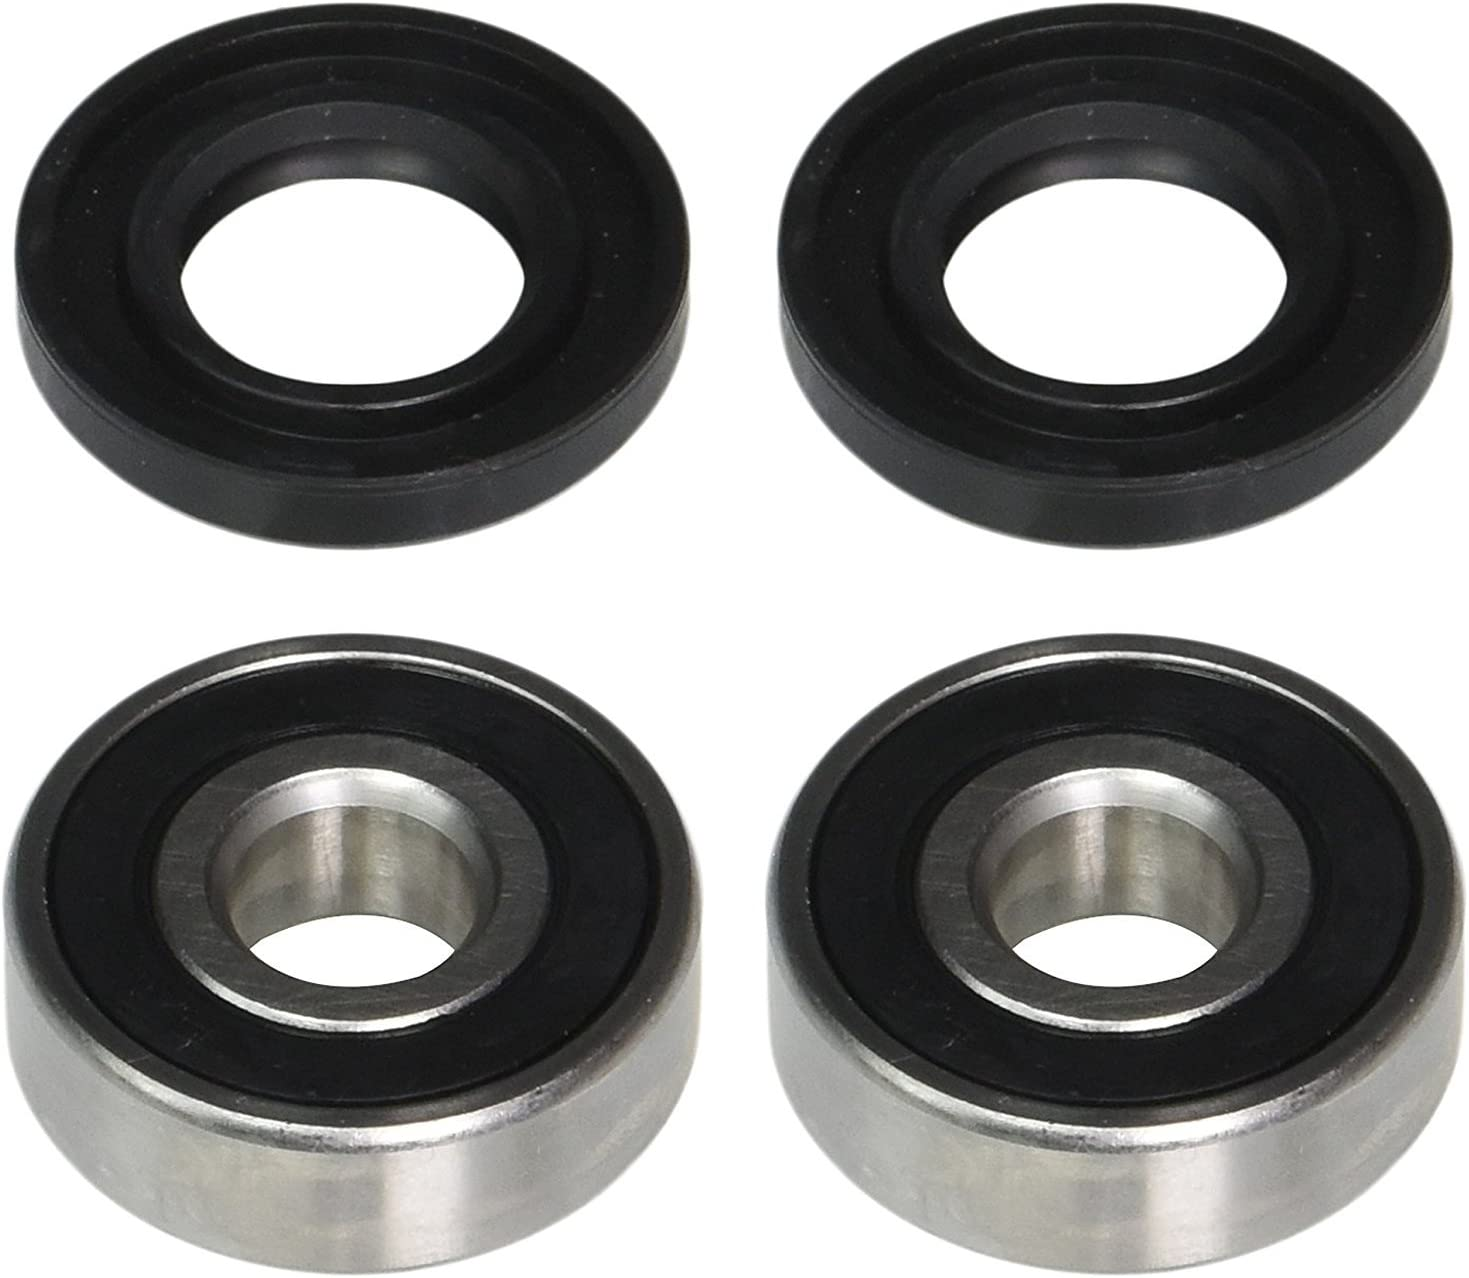 Fits HONDA ATC125M ATV Bearings Kit both sides Rear Wheels 1984-1985